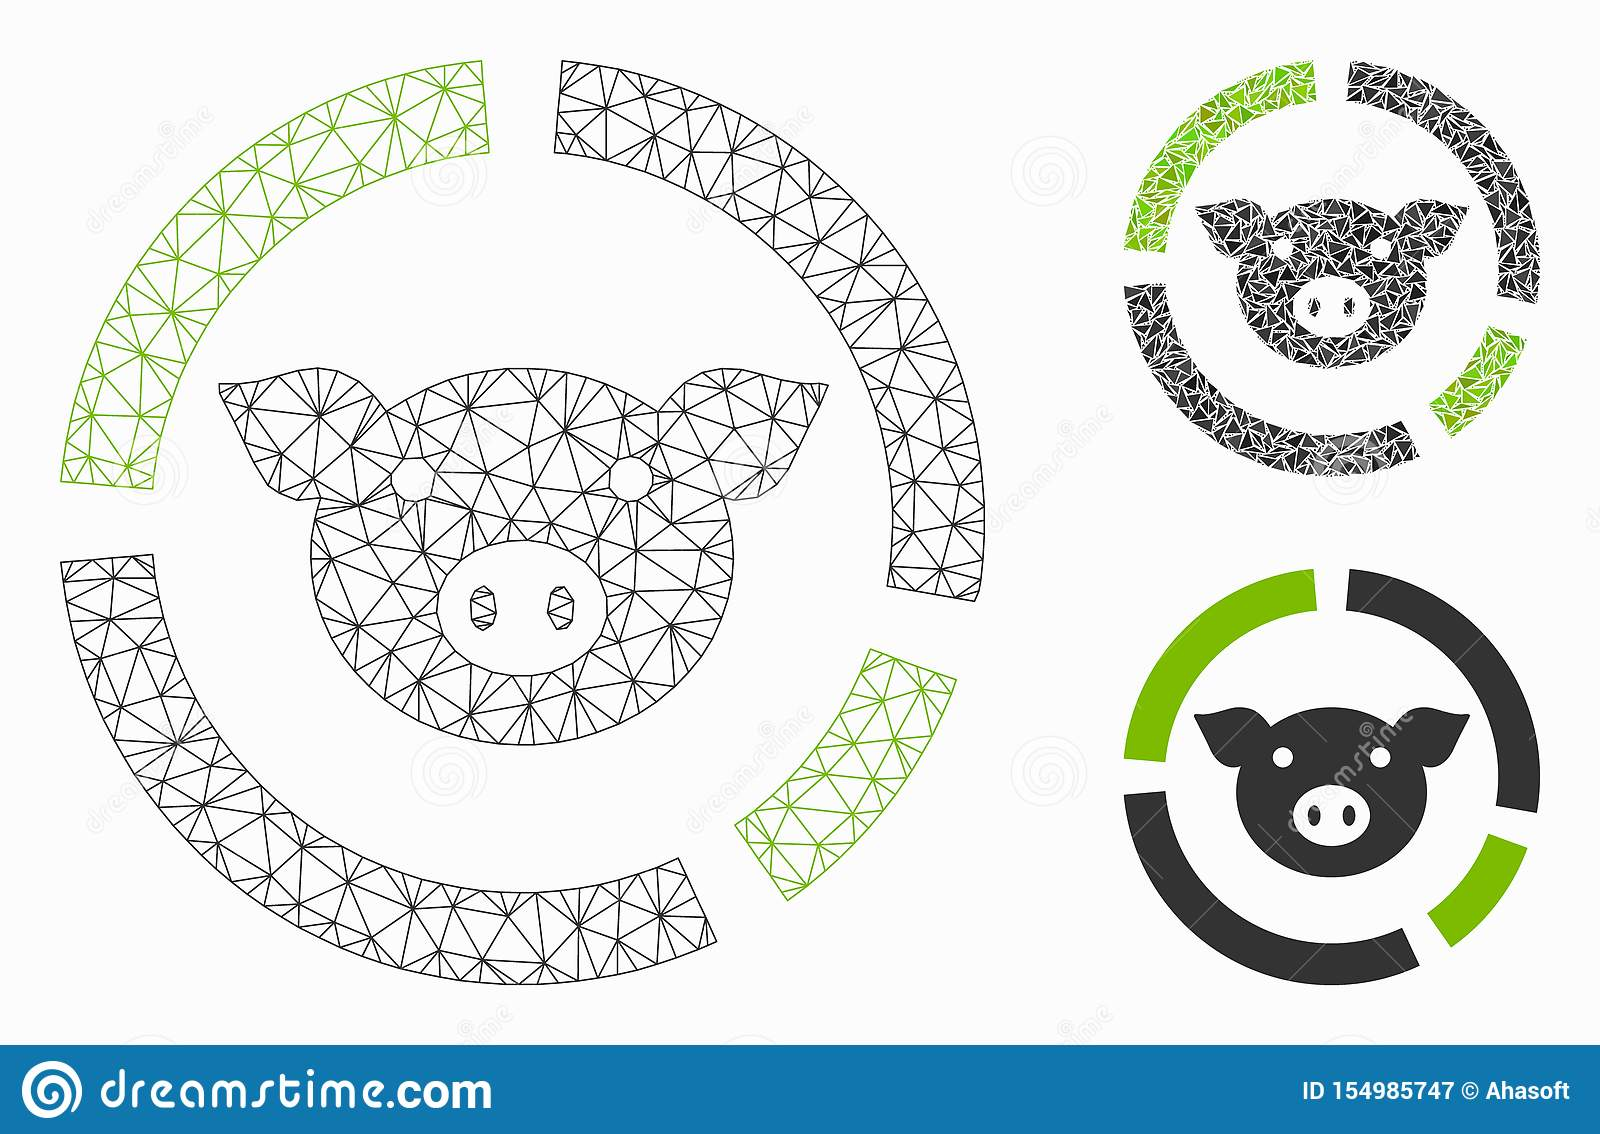 Pig Diagram Vector Mesh Wire Frame Model And Triangle Mosaic Icon Stock Vector